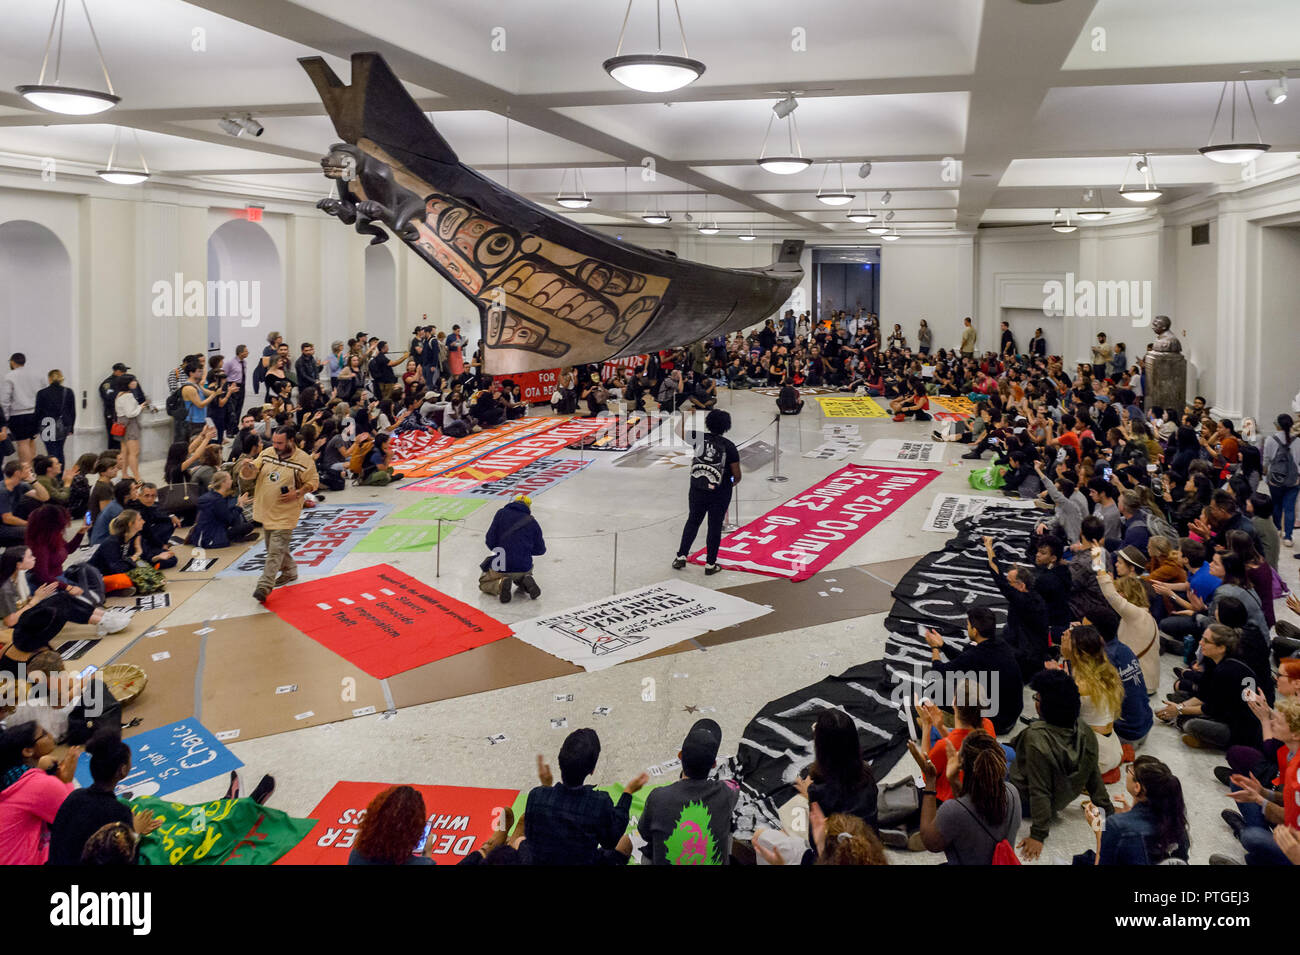 """New York, United States. 08th Oct, 2018. Activists from New York's Indigenous and Black communities, along with decolonial advocates led the 3rd annual """"Anti-Columbus Day Tour"""" at the American Museum of Natural History on October 8, 2018; the groups are demanding that Mayor de Blasio and members of the New York City Council join the growing list of cities in the U.S. that have renamed Columbus Day as Indigenous Peoples' Day and for the removal of Theodore Roosevelt's statue. Credit: Erik McGregor/Pacific Press/Alamy Live News Stock Photo"""